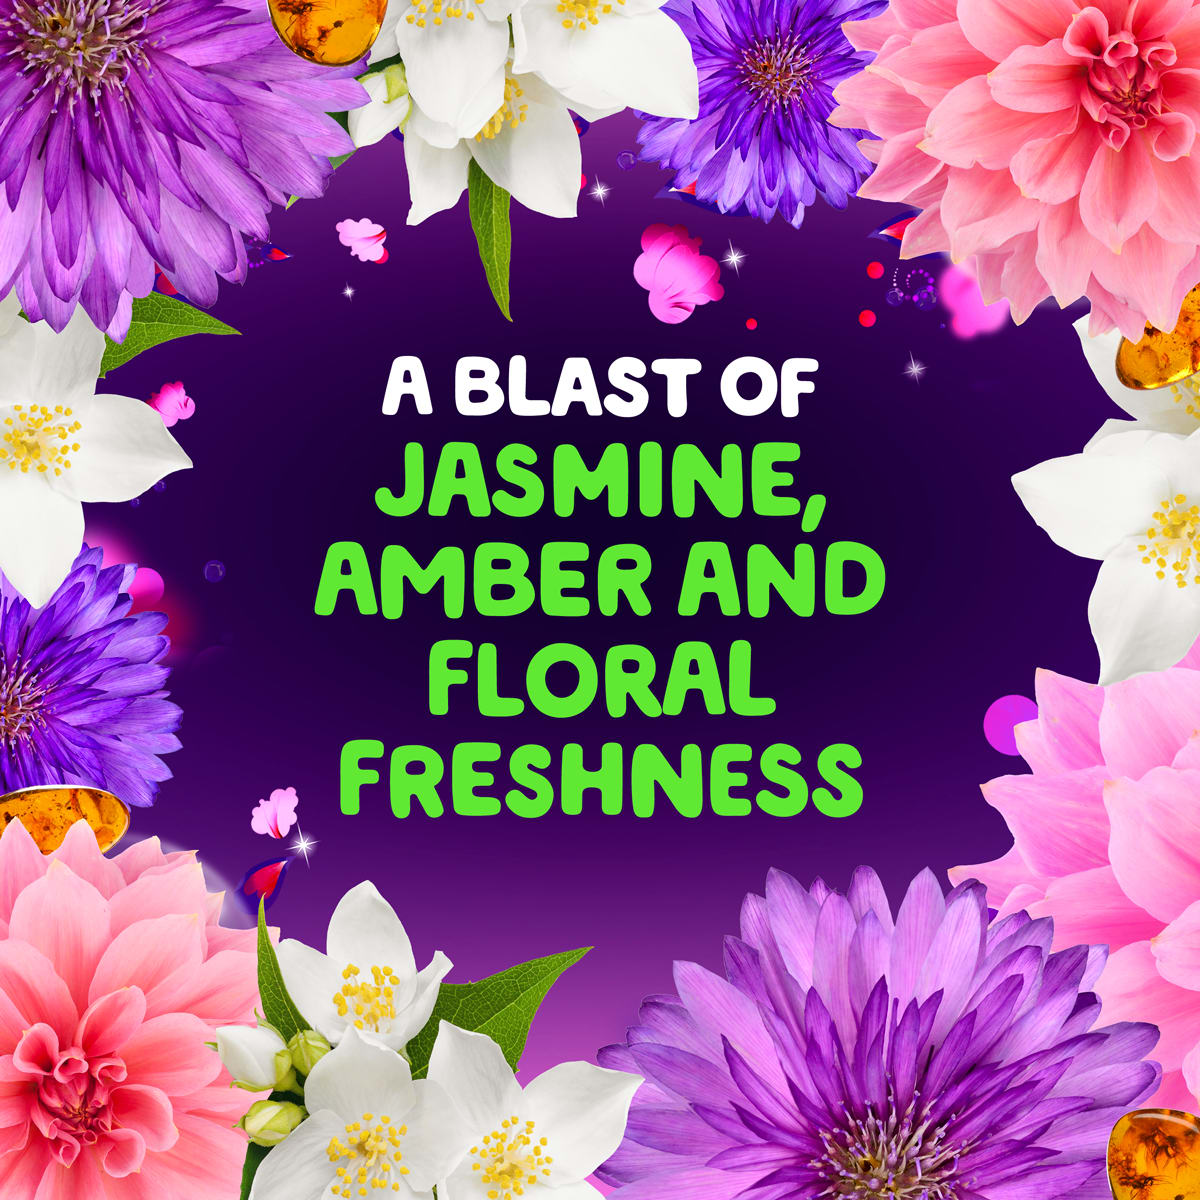 A blast of jasmine, amber, and floral freshness (flowers)